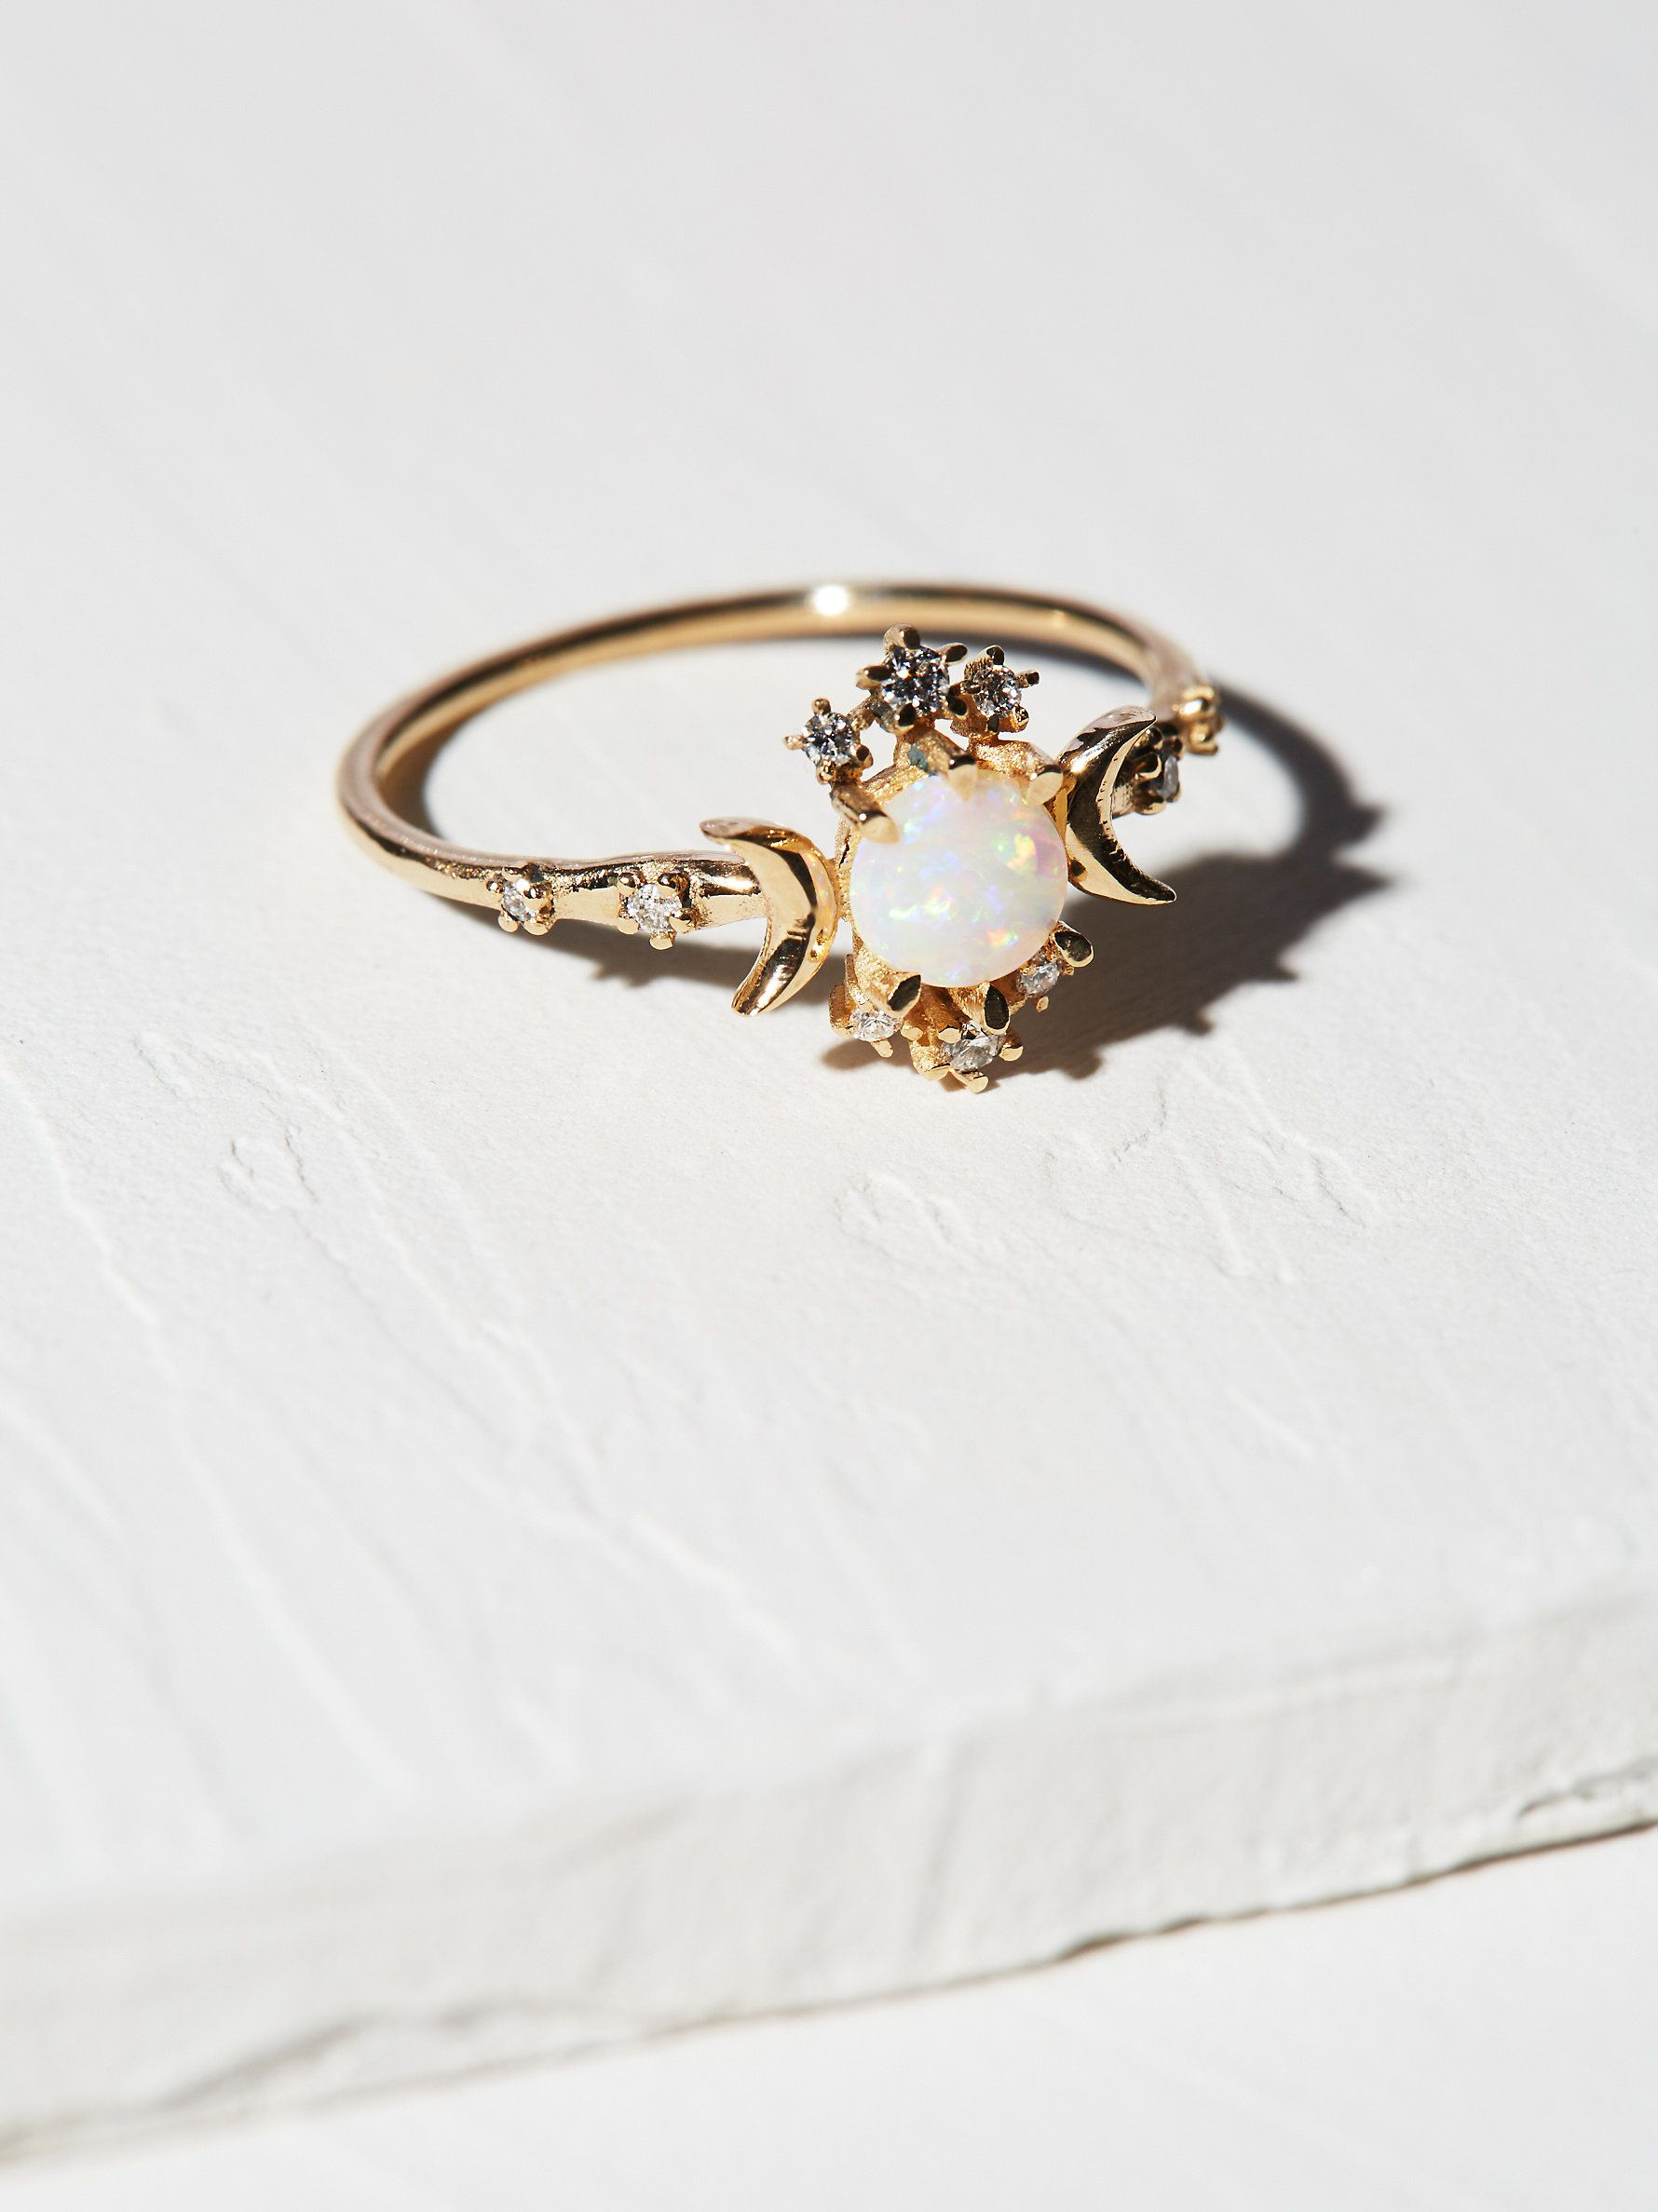 14K Wandering Star Diamond Opal Ring | Made by hand in Morphe's Montreal studio, this delicate, stunning ring features an eye-catching opal and shimmering diamond accents in a galaxy design inspired by the E. E Cummings quote